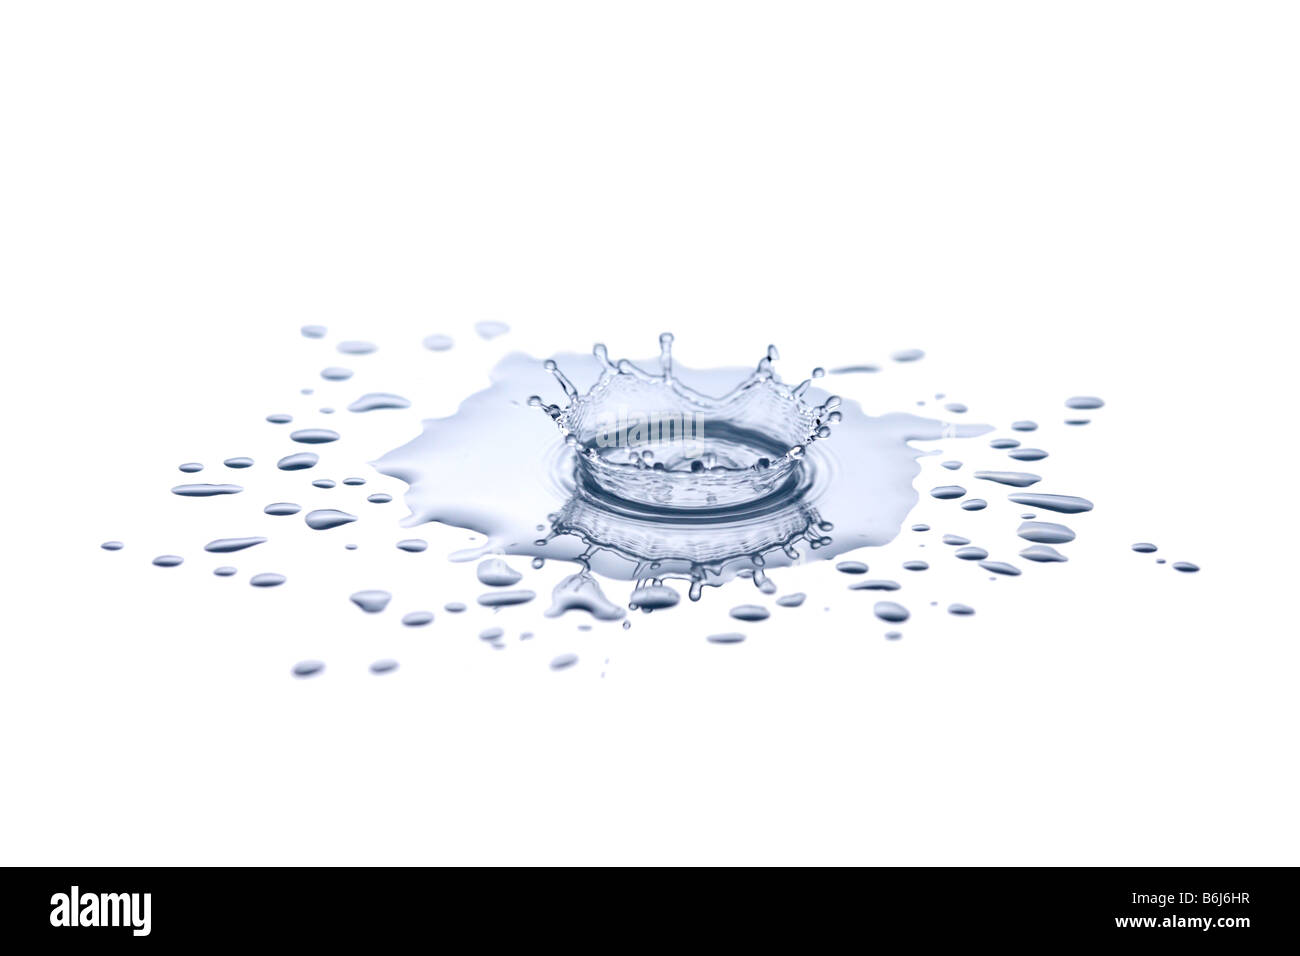 Single drip of water splashing into small puddle of water - Stock Image